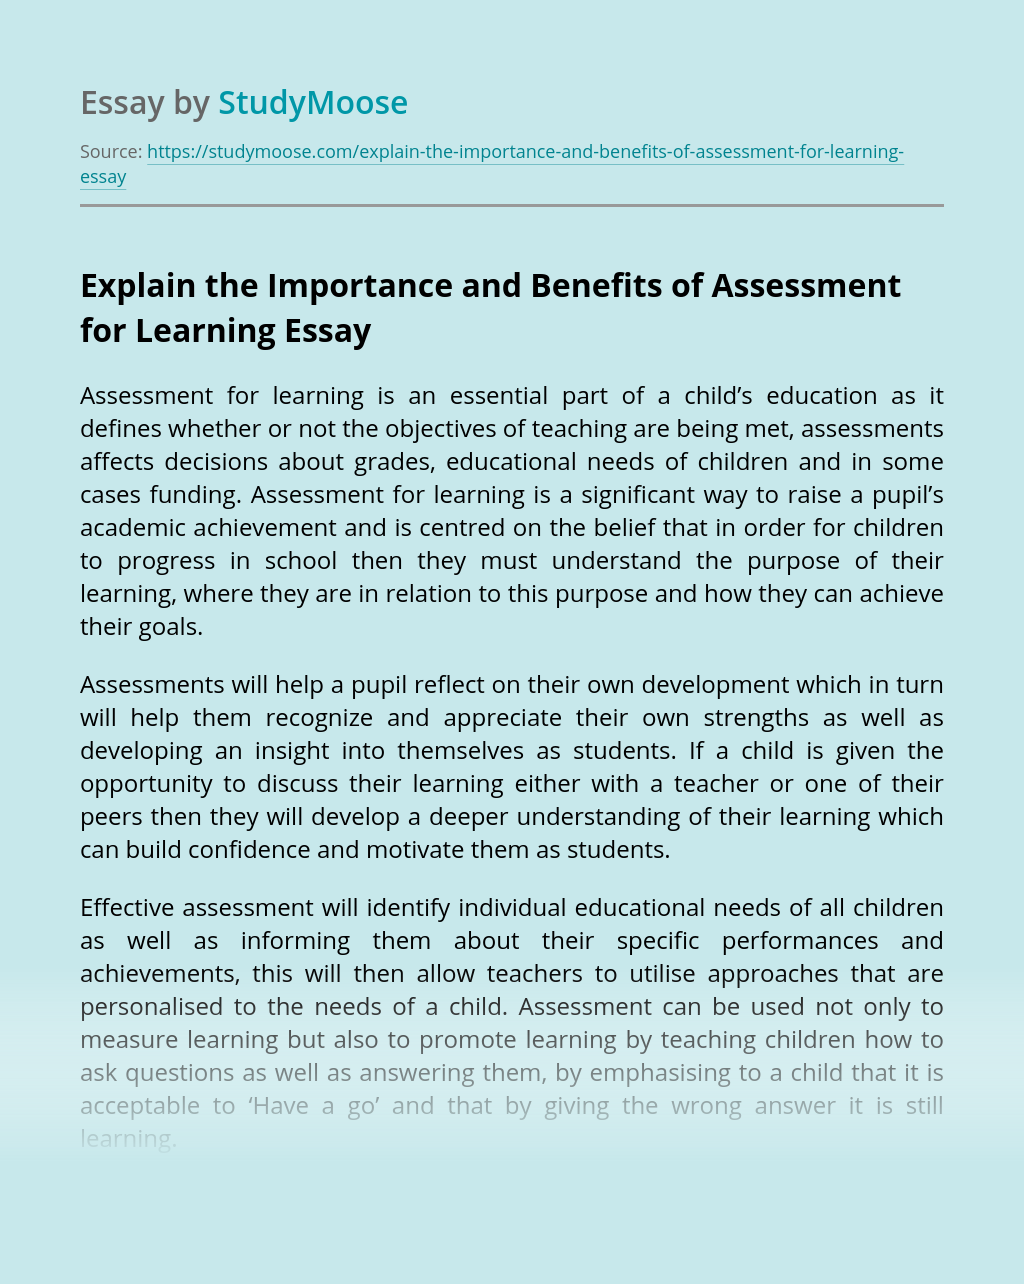 Explain the Importance and Benefits of Assessment for Learning